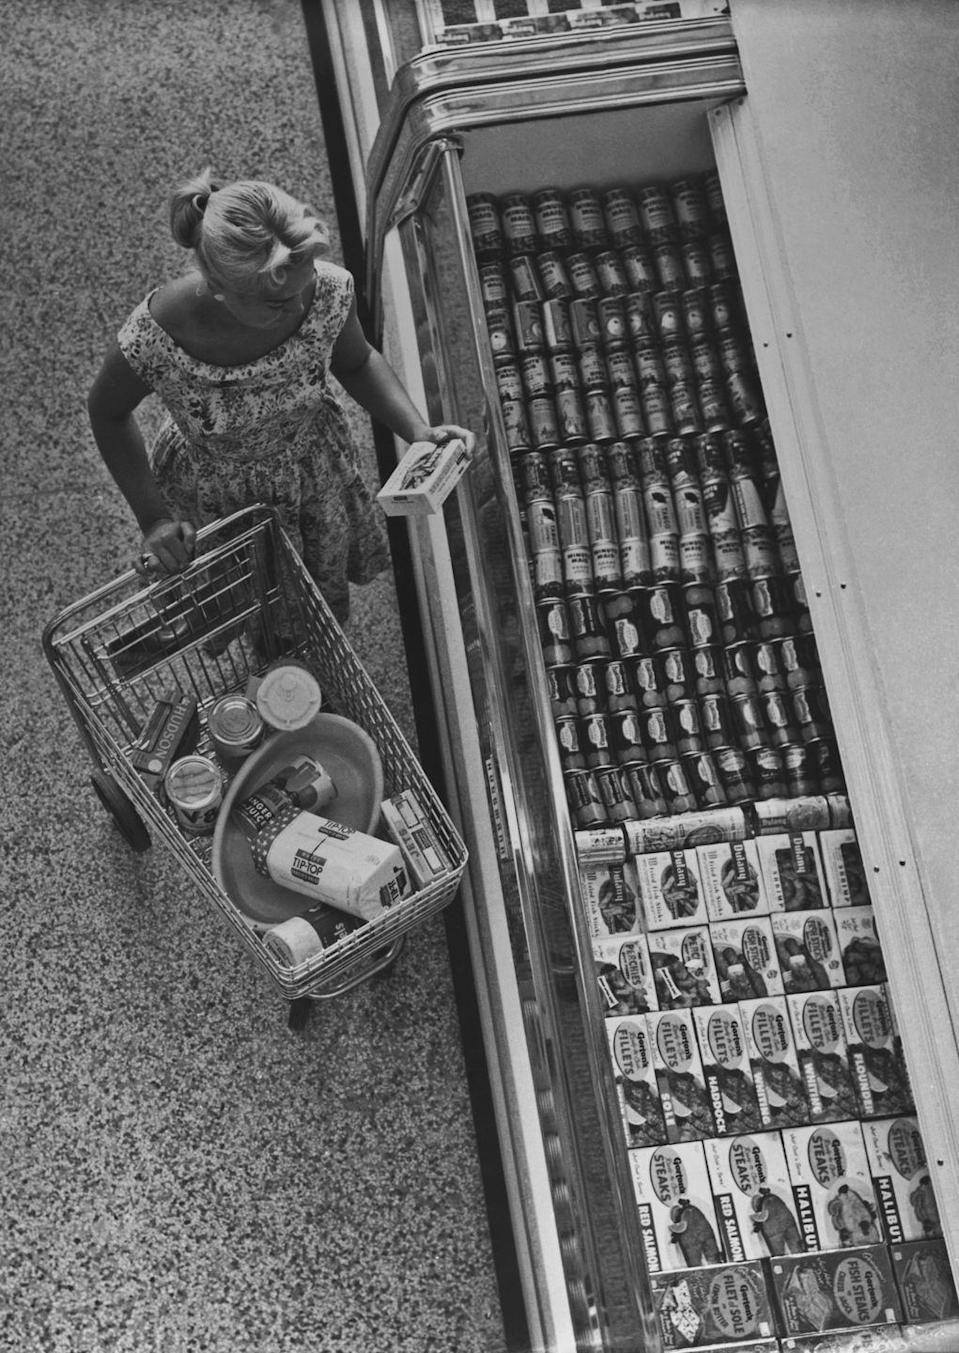 """<p>Until the rise of supermarkets, households got their milk <a href=""""https://food52.com/blog/20229-milkmen-history"""" rel=""""nofollow noopener"""" target=""""_blank"""" data-ylk=""""slk:delivered by a milk man"""" class=""""link rapid-noclick-resp"""">delivered by a milk man</a>. This model saw a decline when people started moving to more suburban neighborhoods, where driving was a part of their daily routine.</p>"""